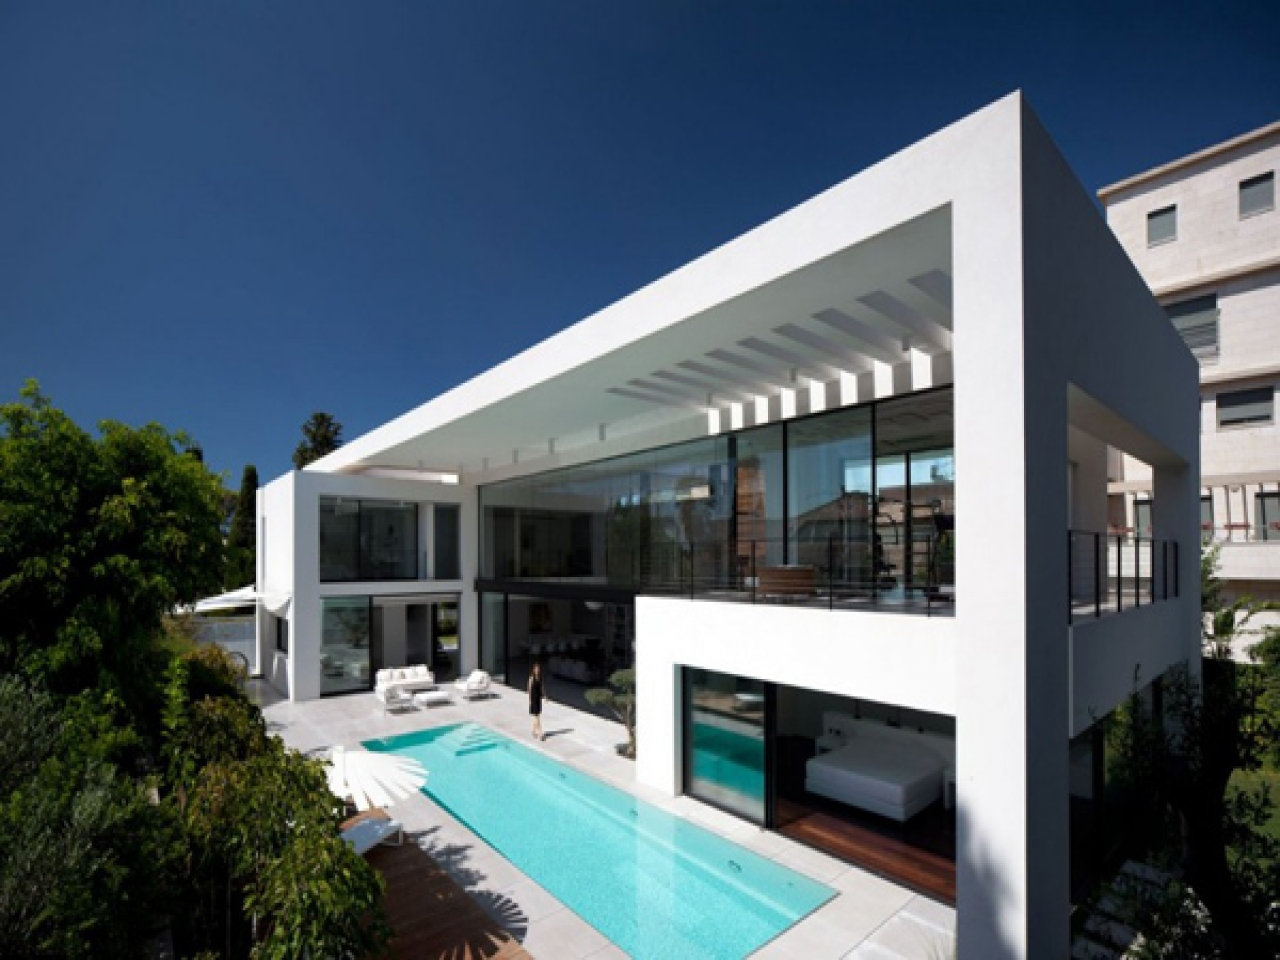 Modern house architecture designs israel modern japanese for Concept home designs